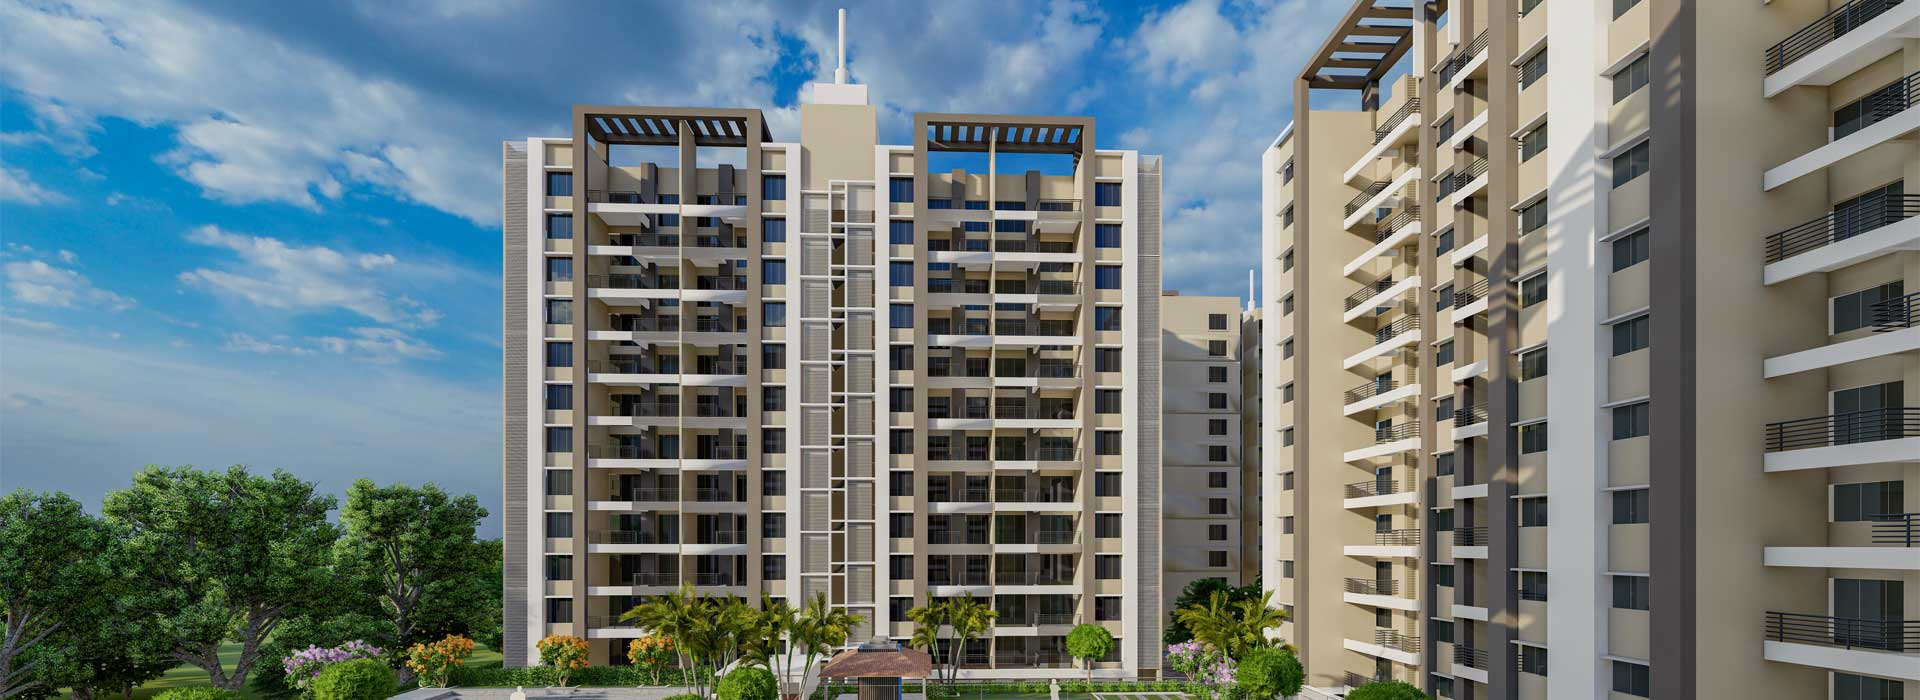 1-2-bhk-flats-in-wagholi